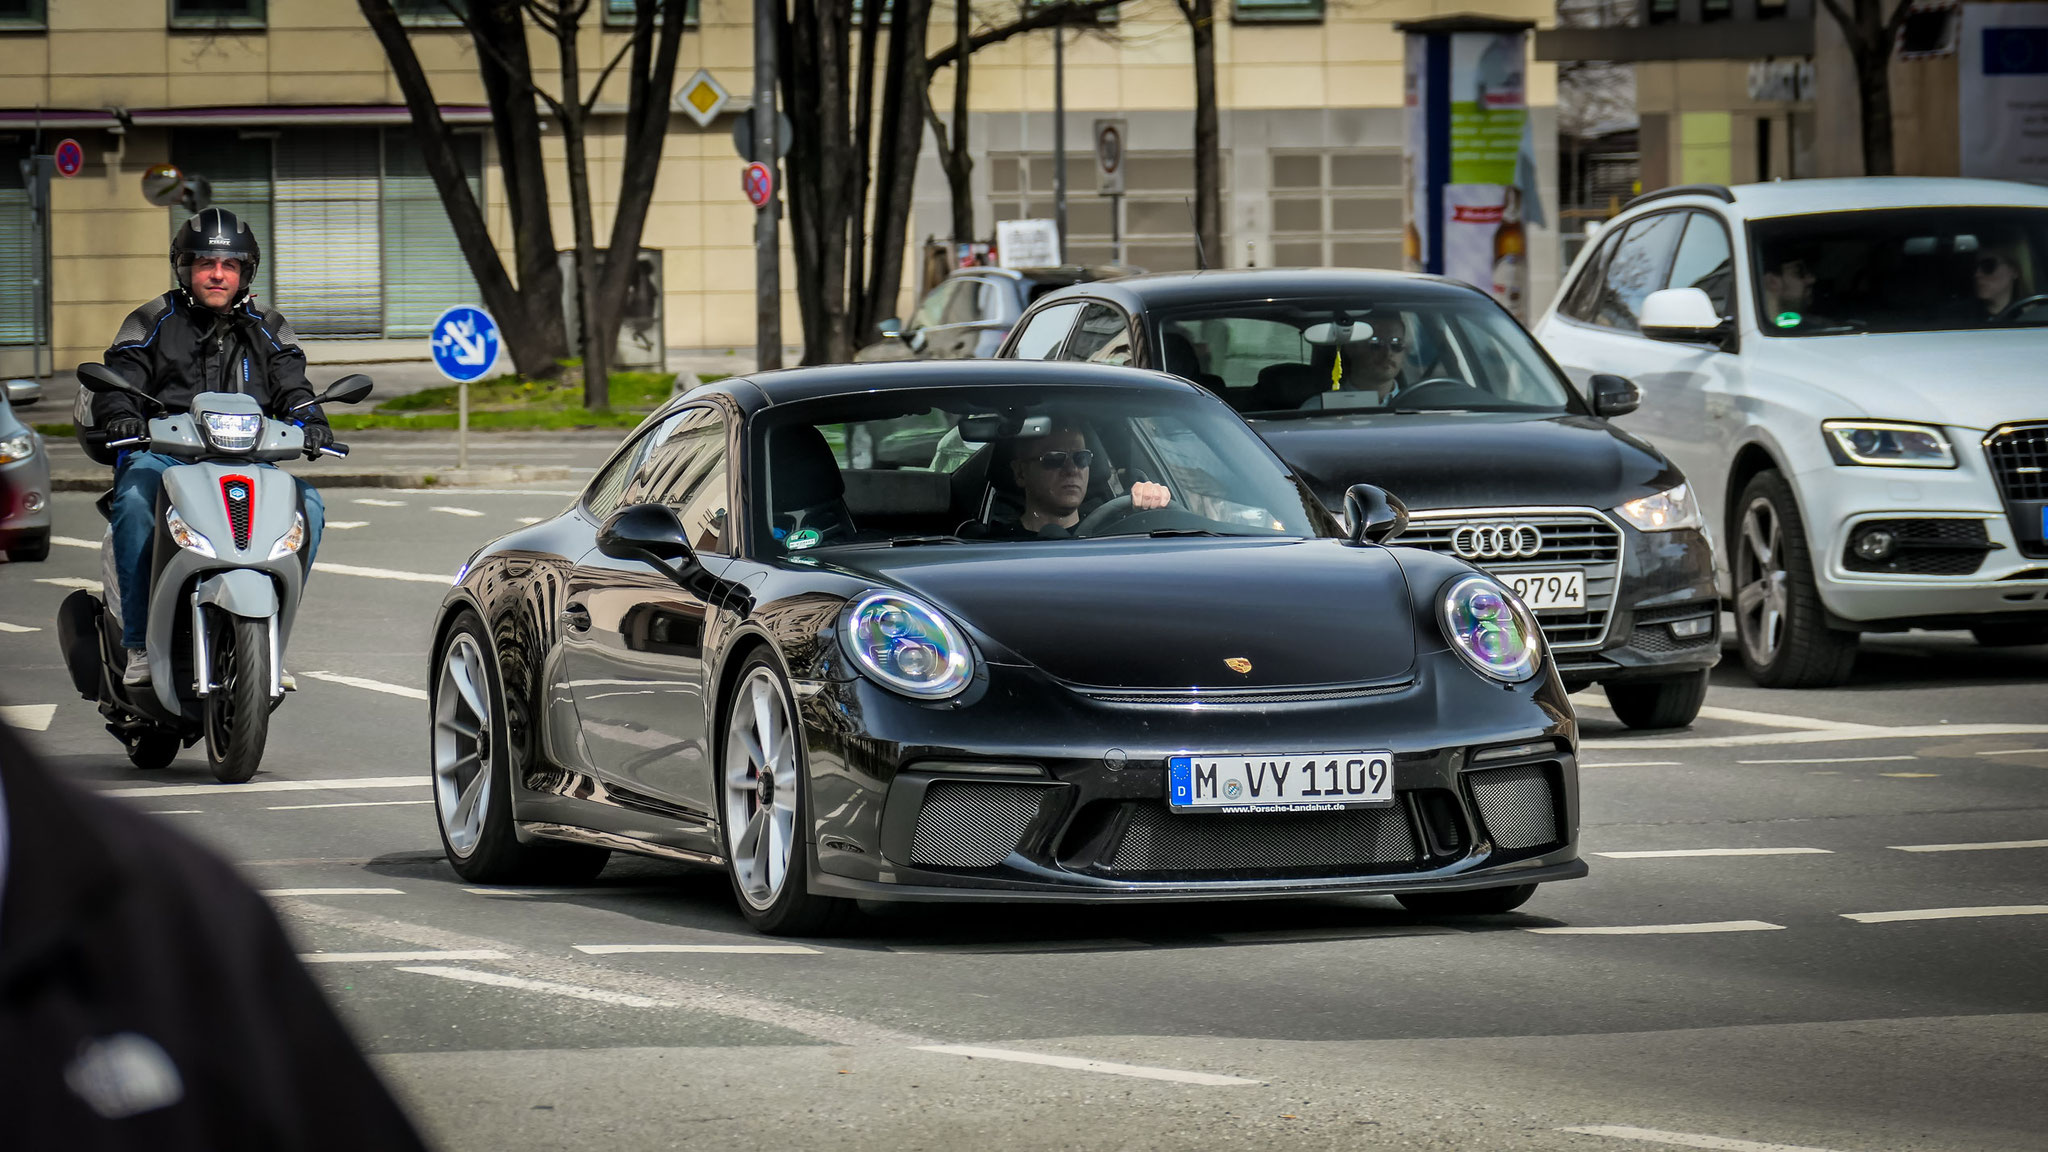 Porsche 991 GT3 Touring Package - M-VY-1109